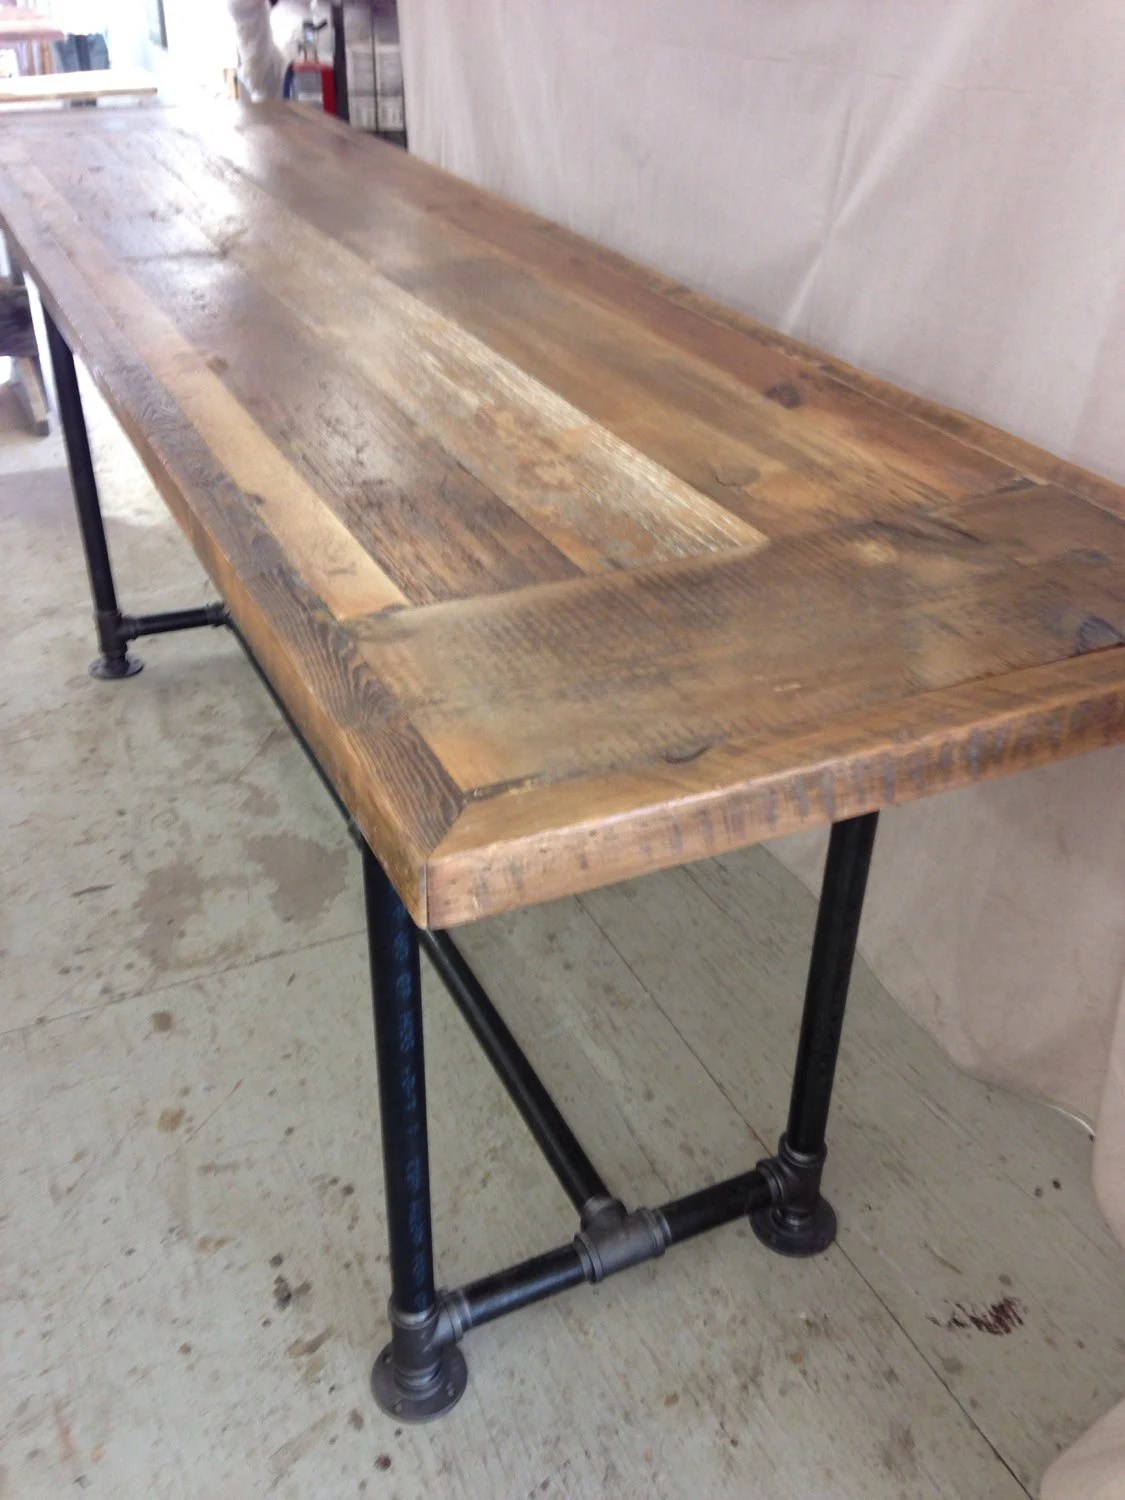 3 X 8 Table Reclaimed Wood Dining Table Modern Industrial 8 Ft X 3 Ft